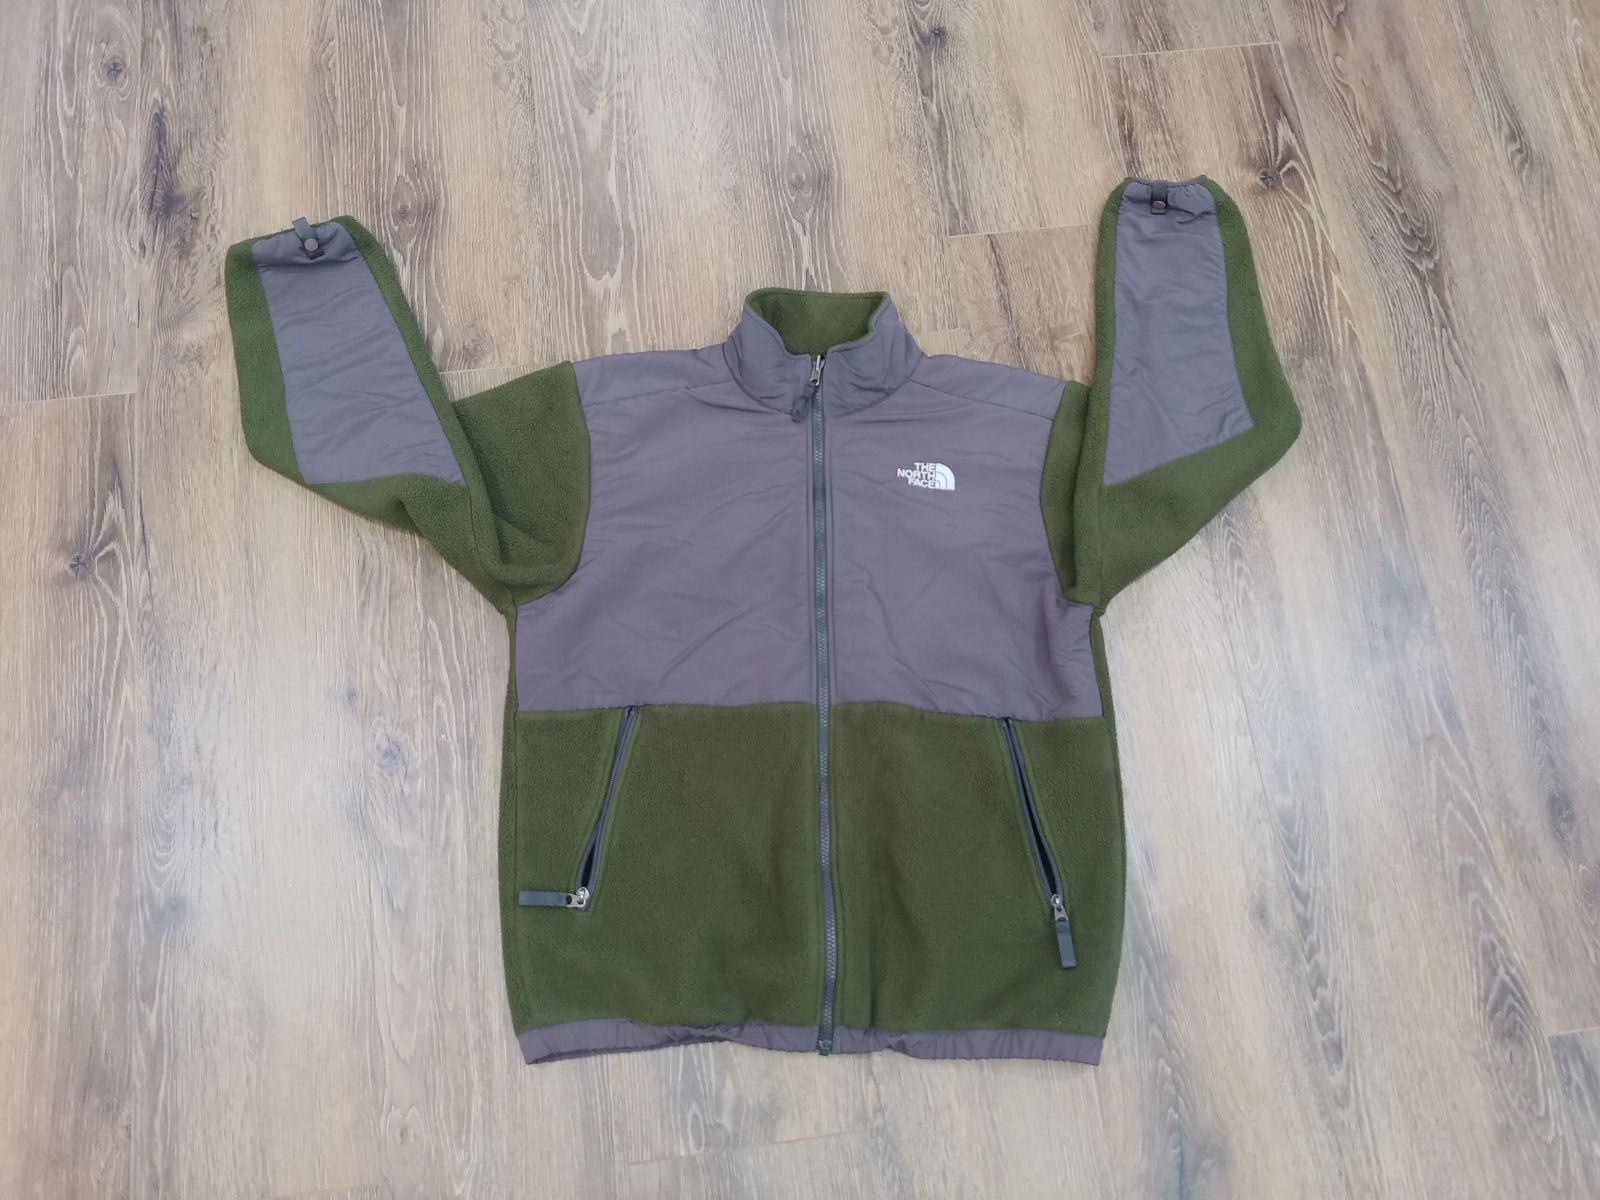 The North Face Denali Classic Polartec Fleece Jacket Boys X Large Mens Small The Condition Is Preowned If You Ahve Any North Face Coat The North Face Jackets [ 1200 x 1600 Pixel ]